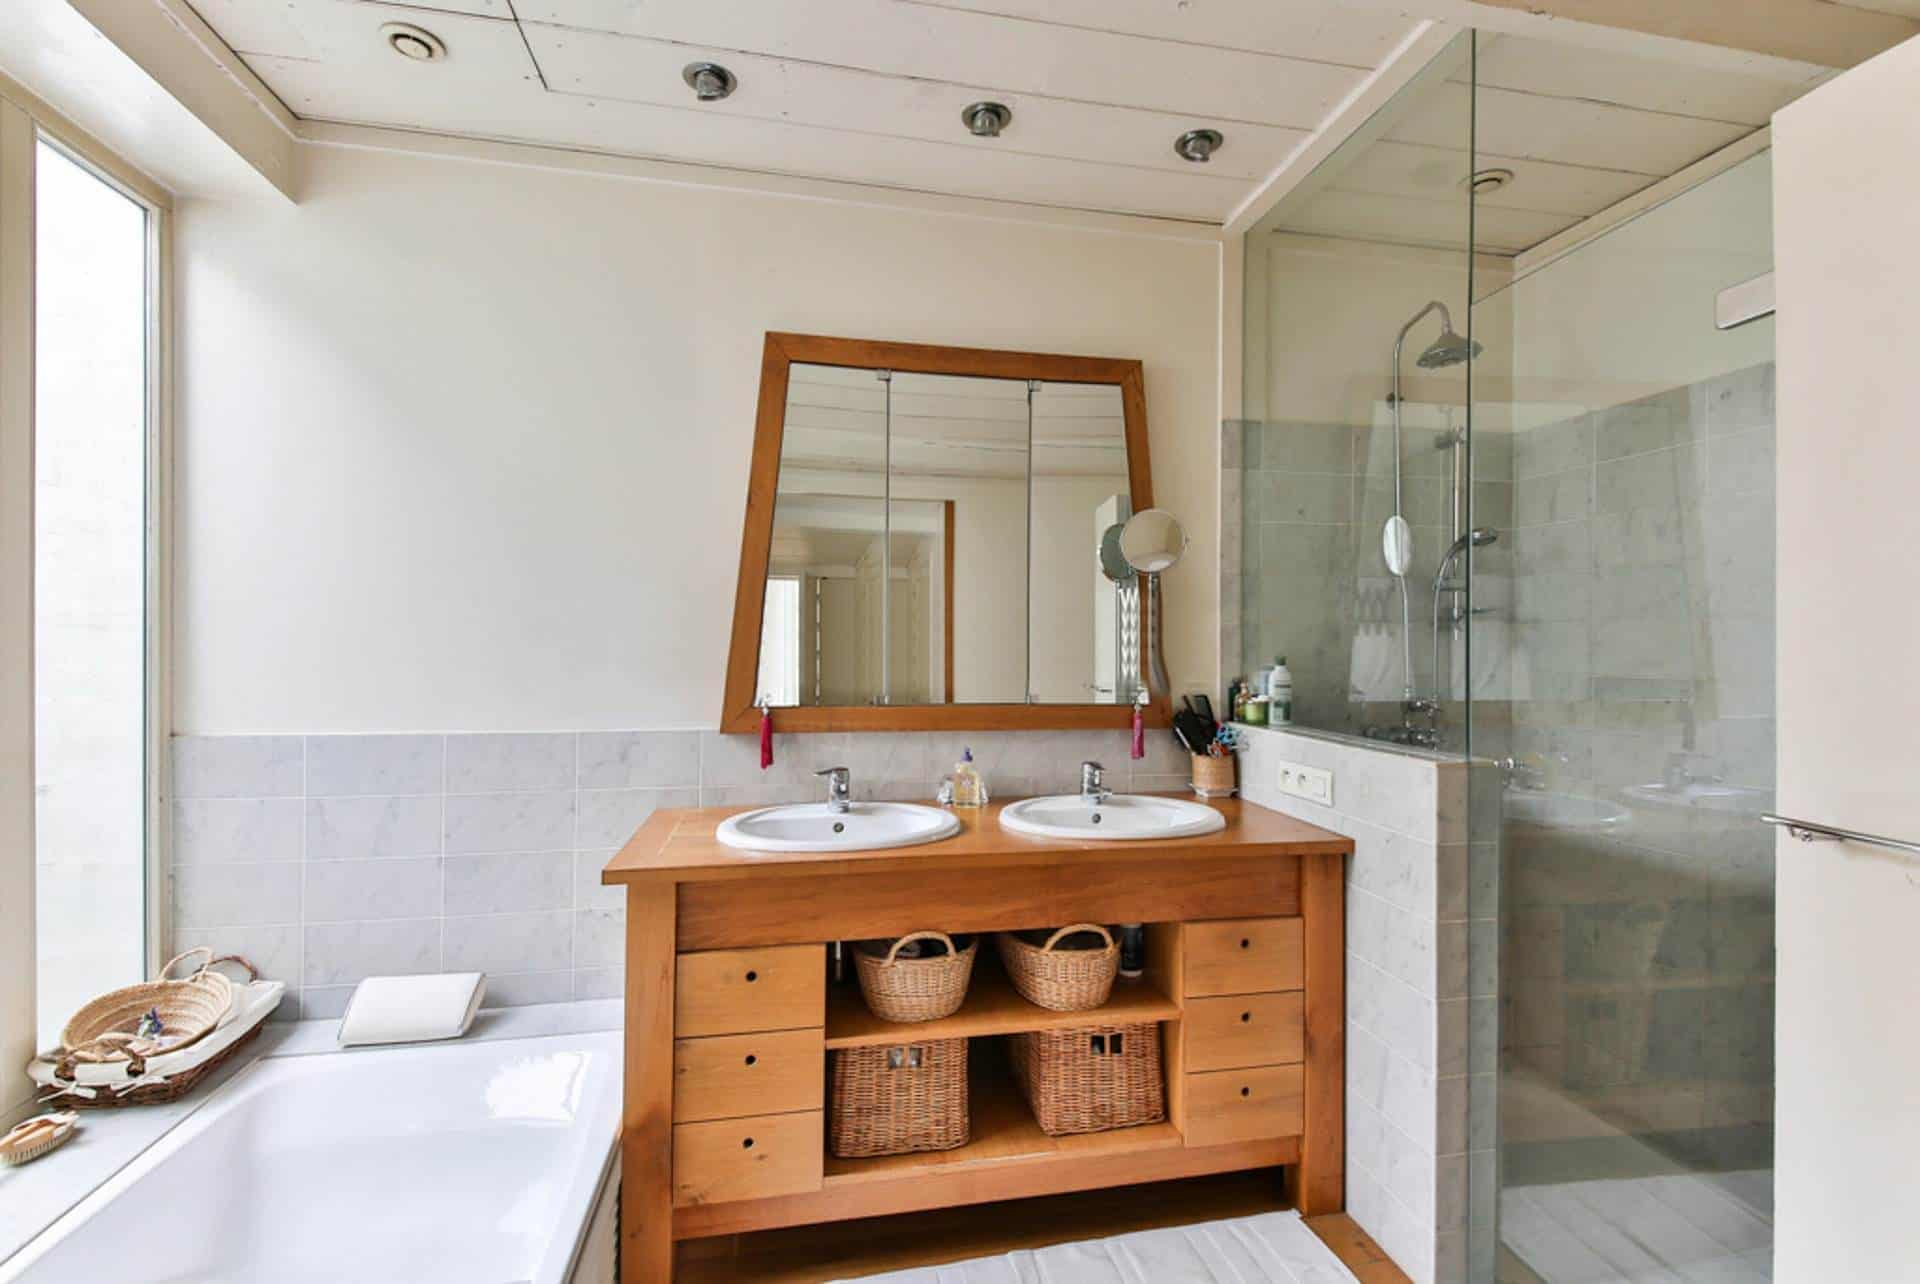 5 Tips For Redecorating A Small Bathroom On A Budget - The ...